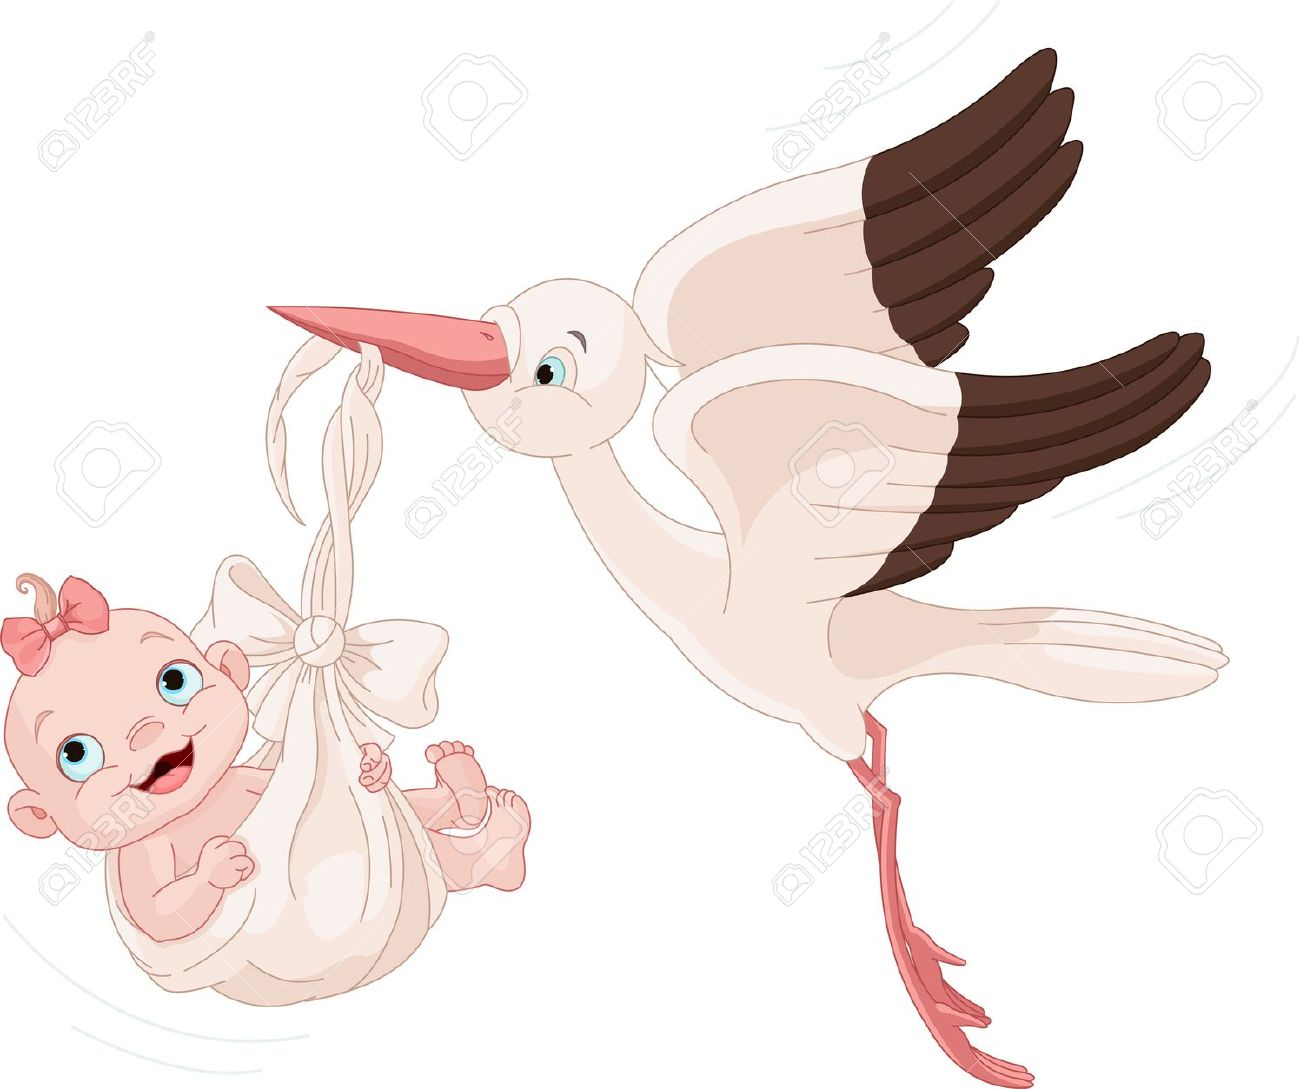 Baby girl stork clipart clipart free stock Cute Stork Carrying A Baby Girl Royalty Free Cliparts, Vectors ... clipart free stock